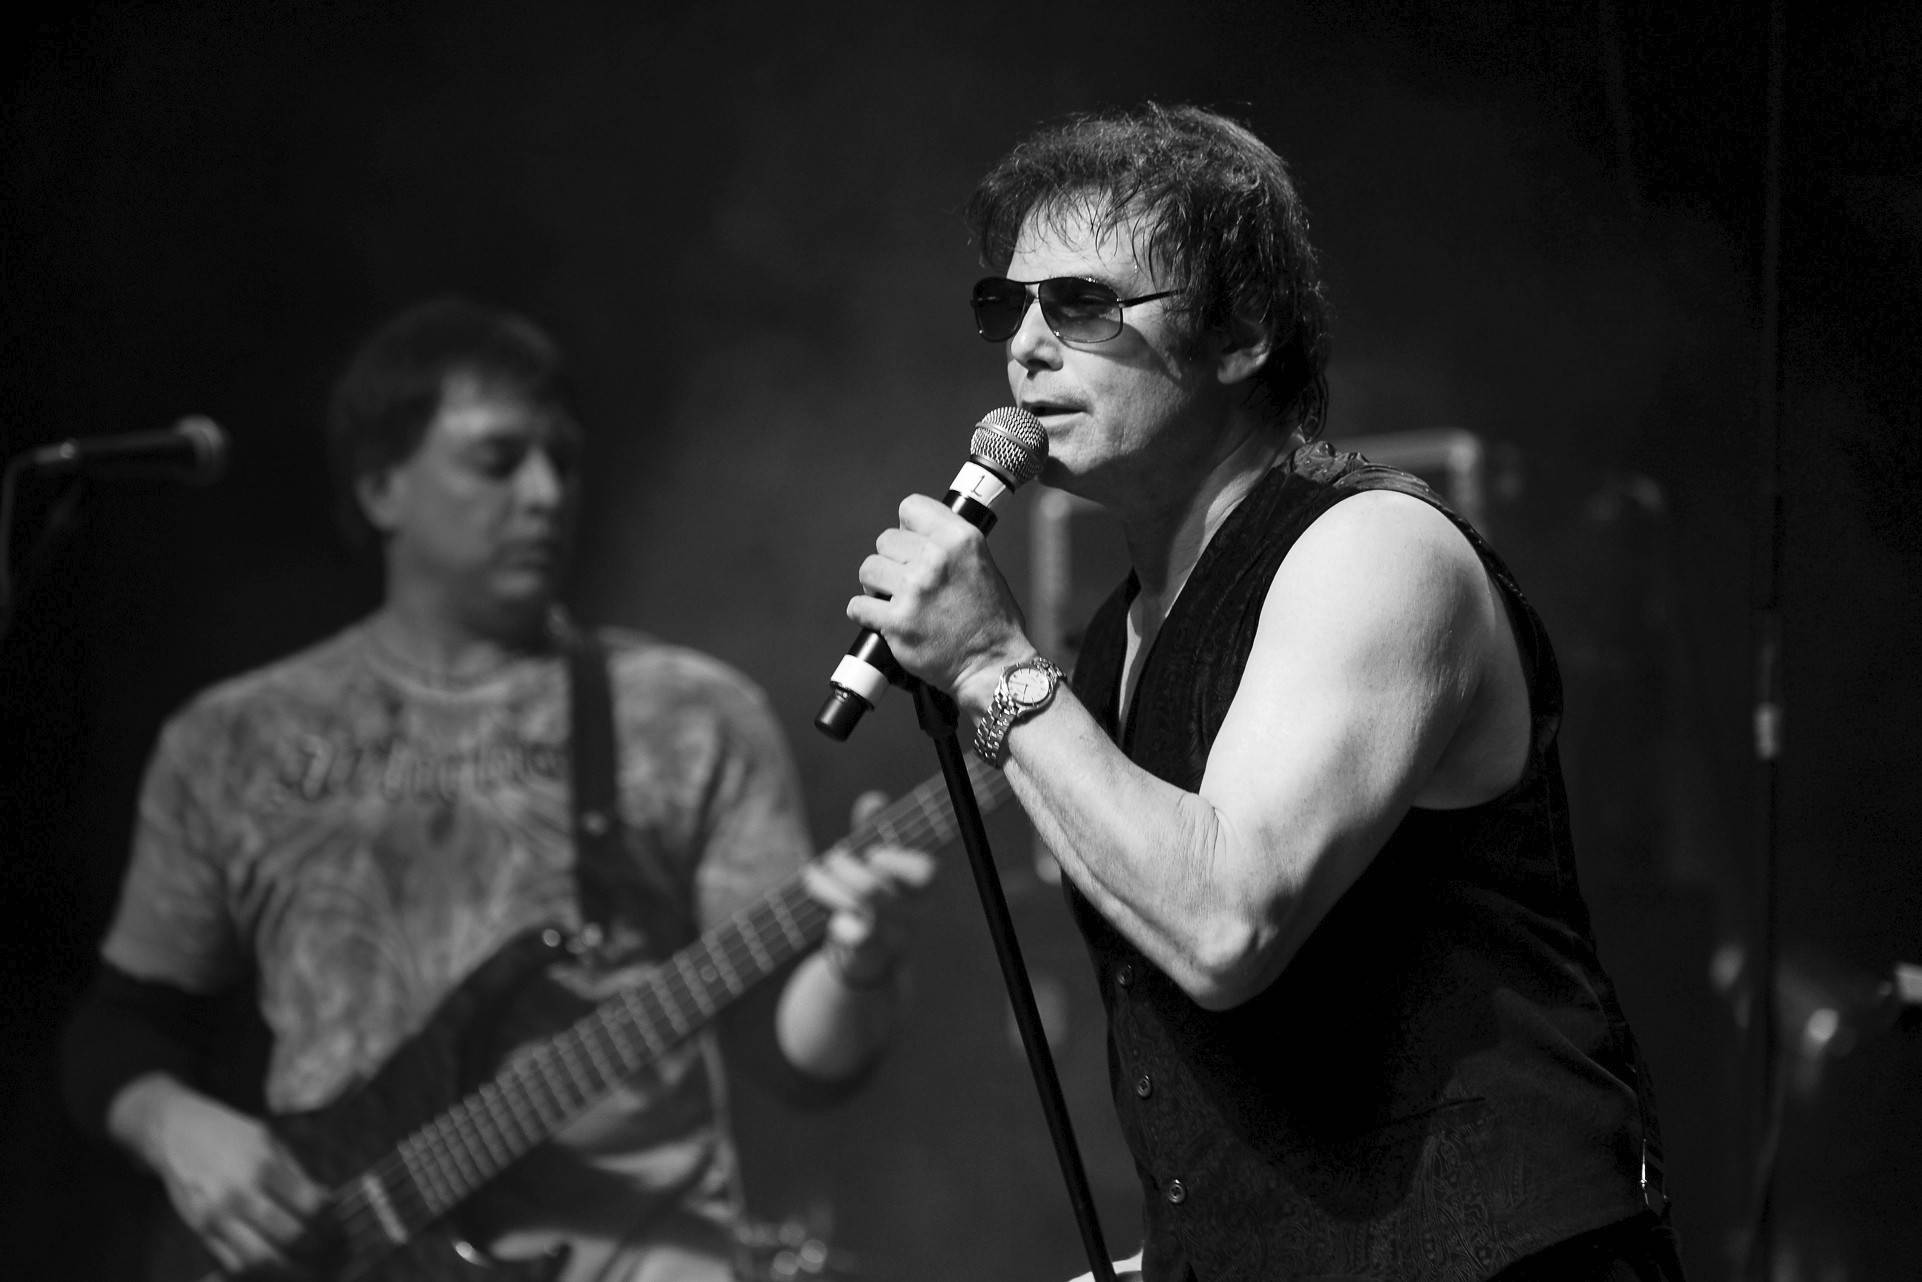 Jimi Jamison, former lead singer of Survivor, died Sept. 1 after suffering a heart attack.